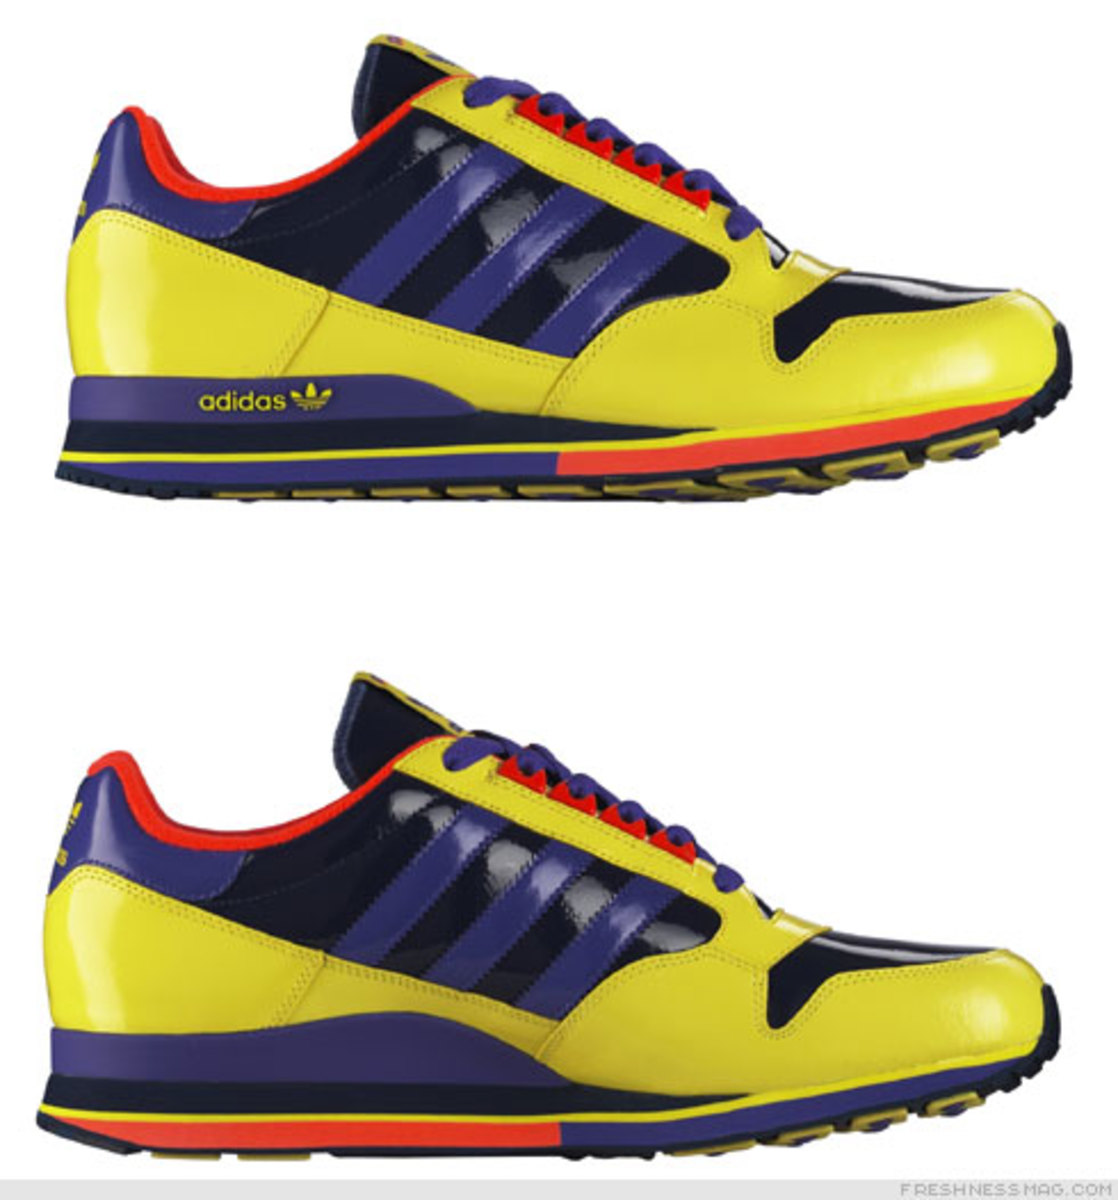 Freshness Feature: Adidas ZX Family - Patent Pack - 1